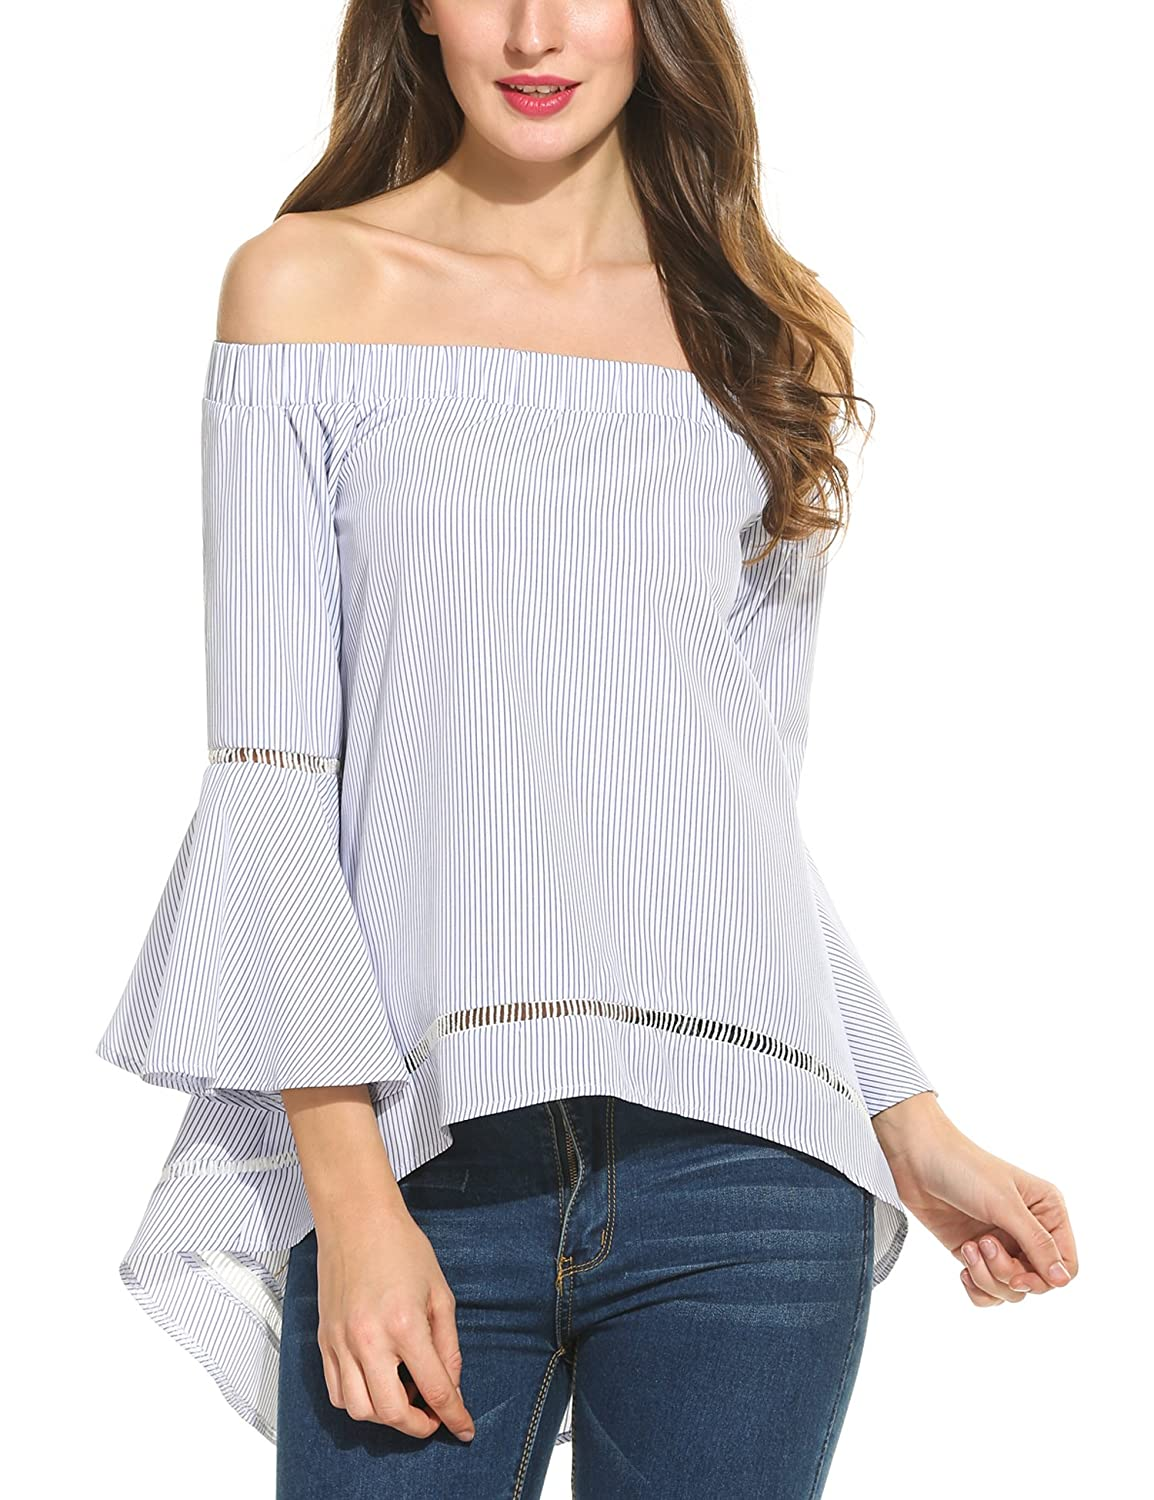 f0f9d1c360cb32 ANGVNS Women Casual Cute Summer Off Shoulder Loose Shirts Baggy Beach Blouse  at Amazon Women s Clothing store